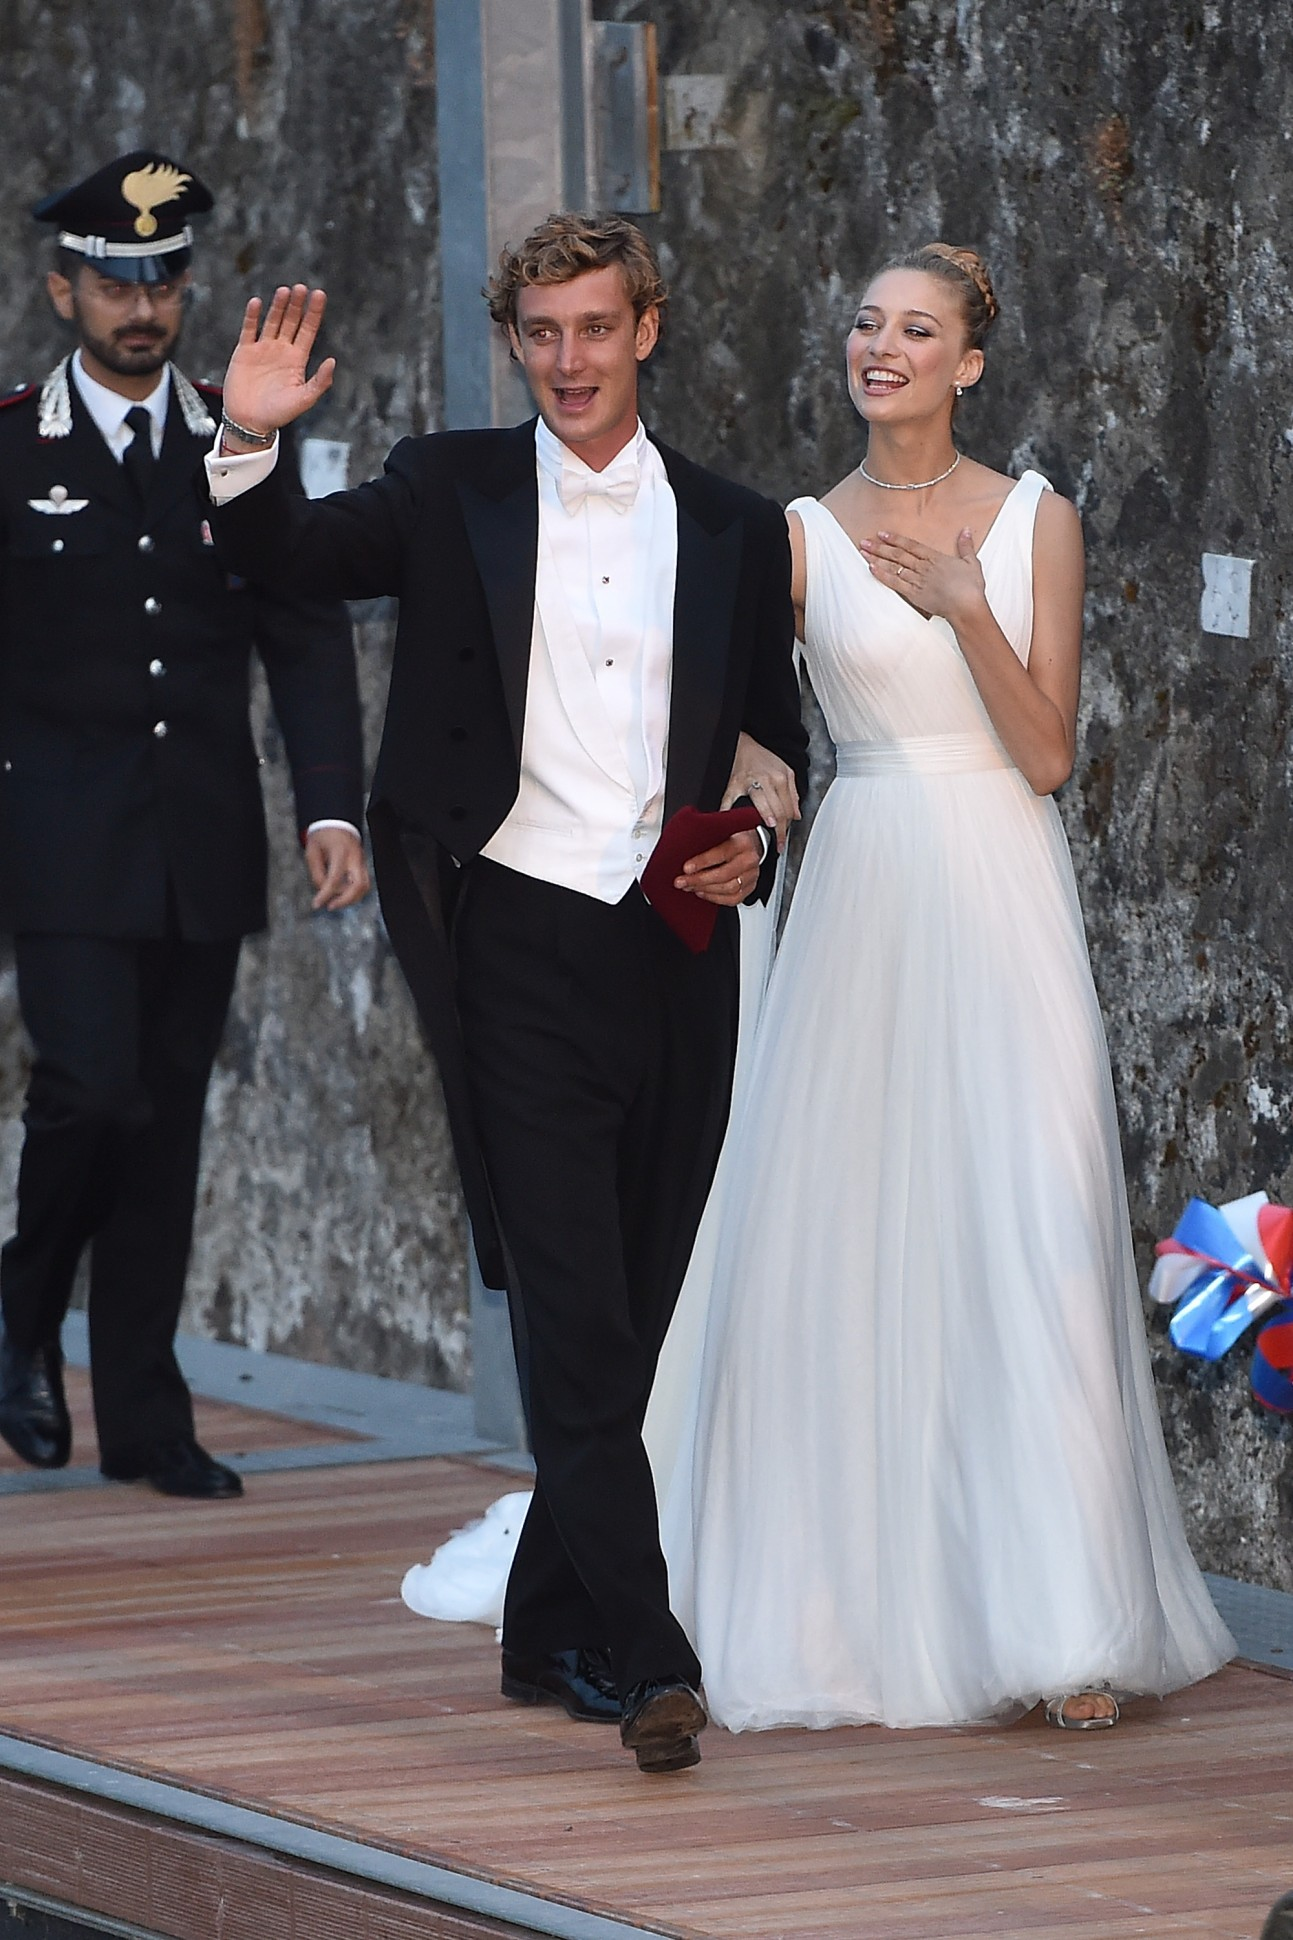 More Pictures Revealed From Pierre Casiraghis Wedding